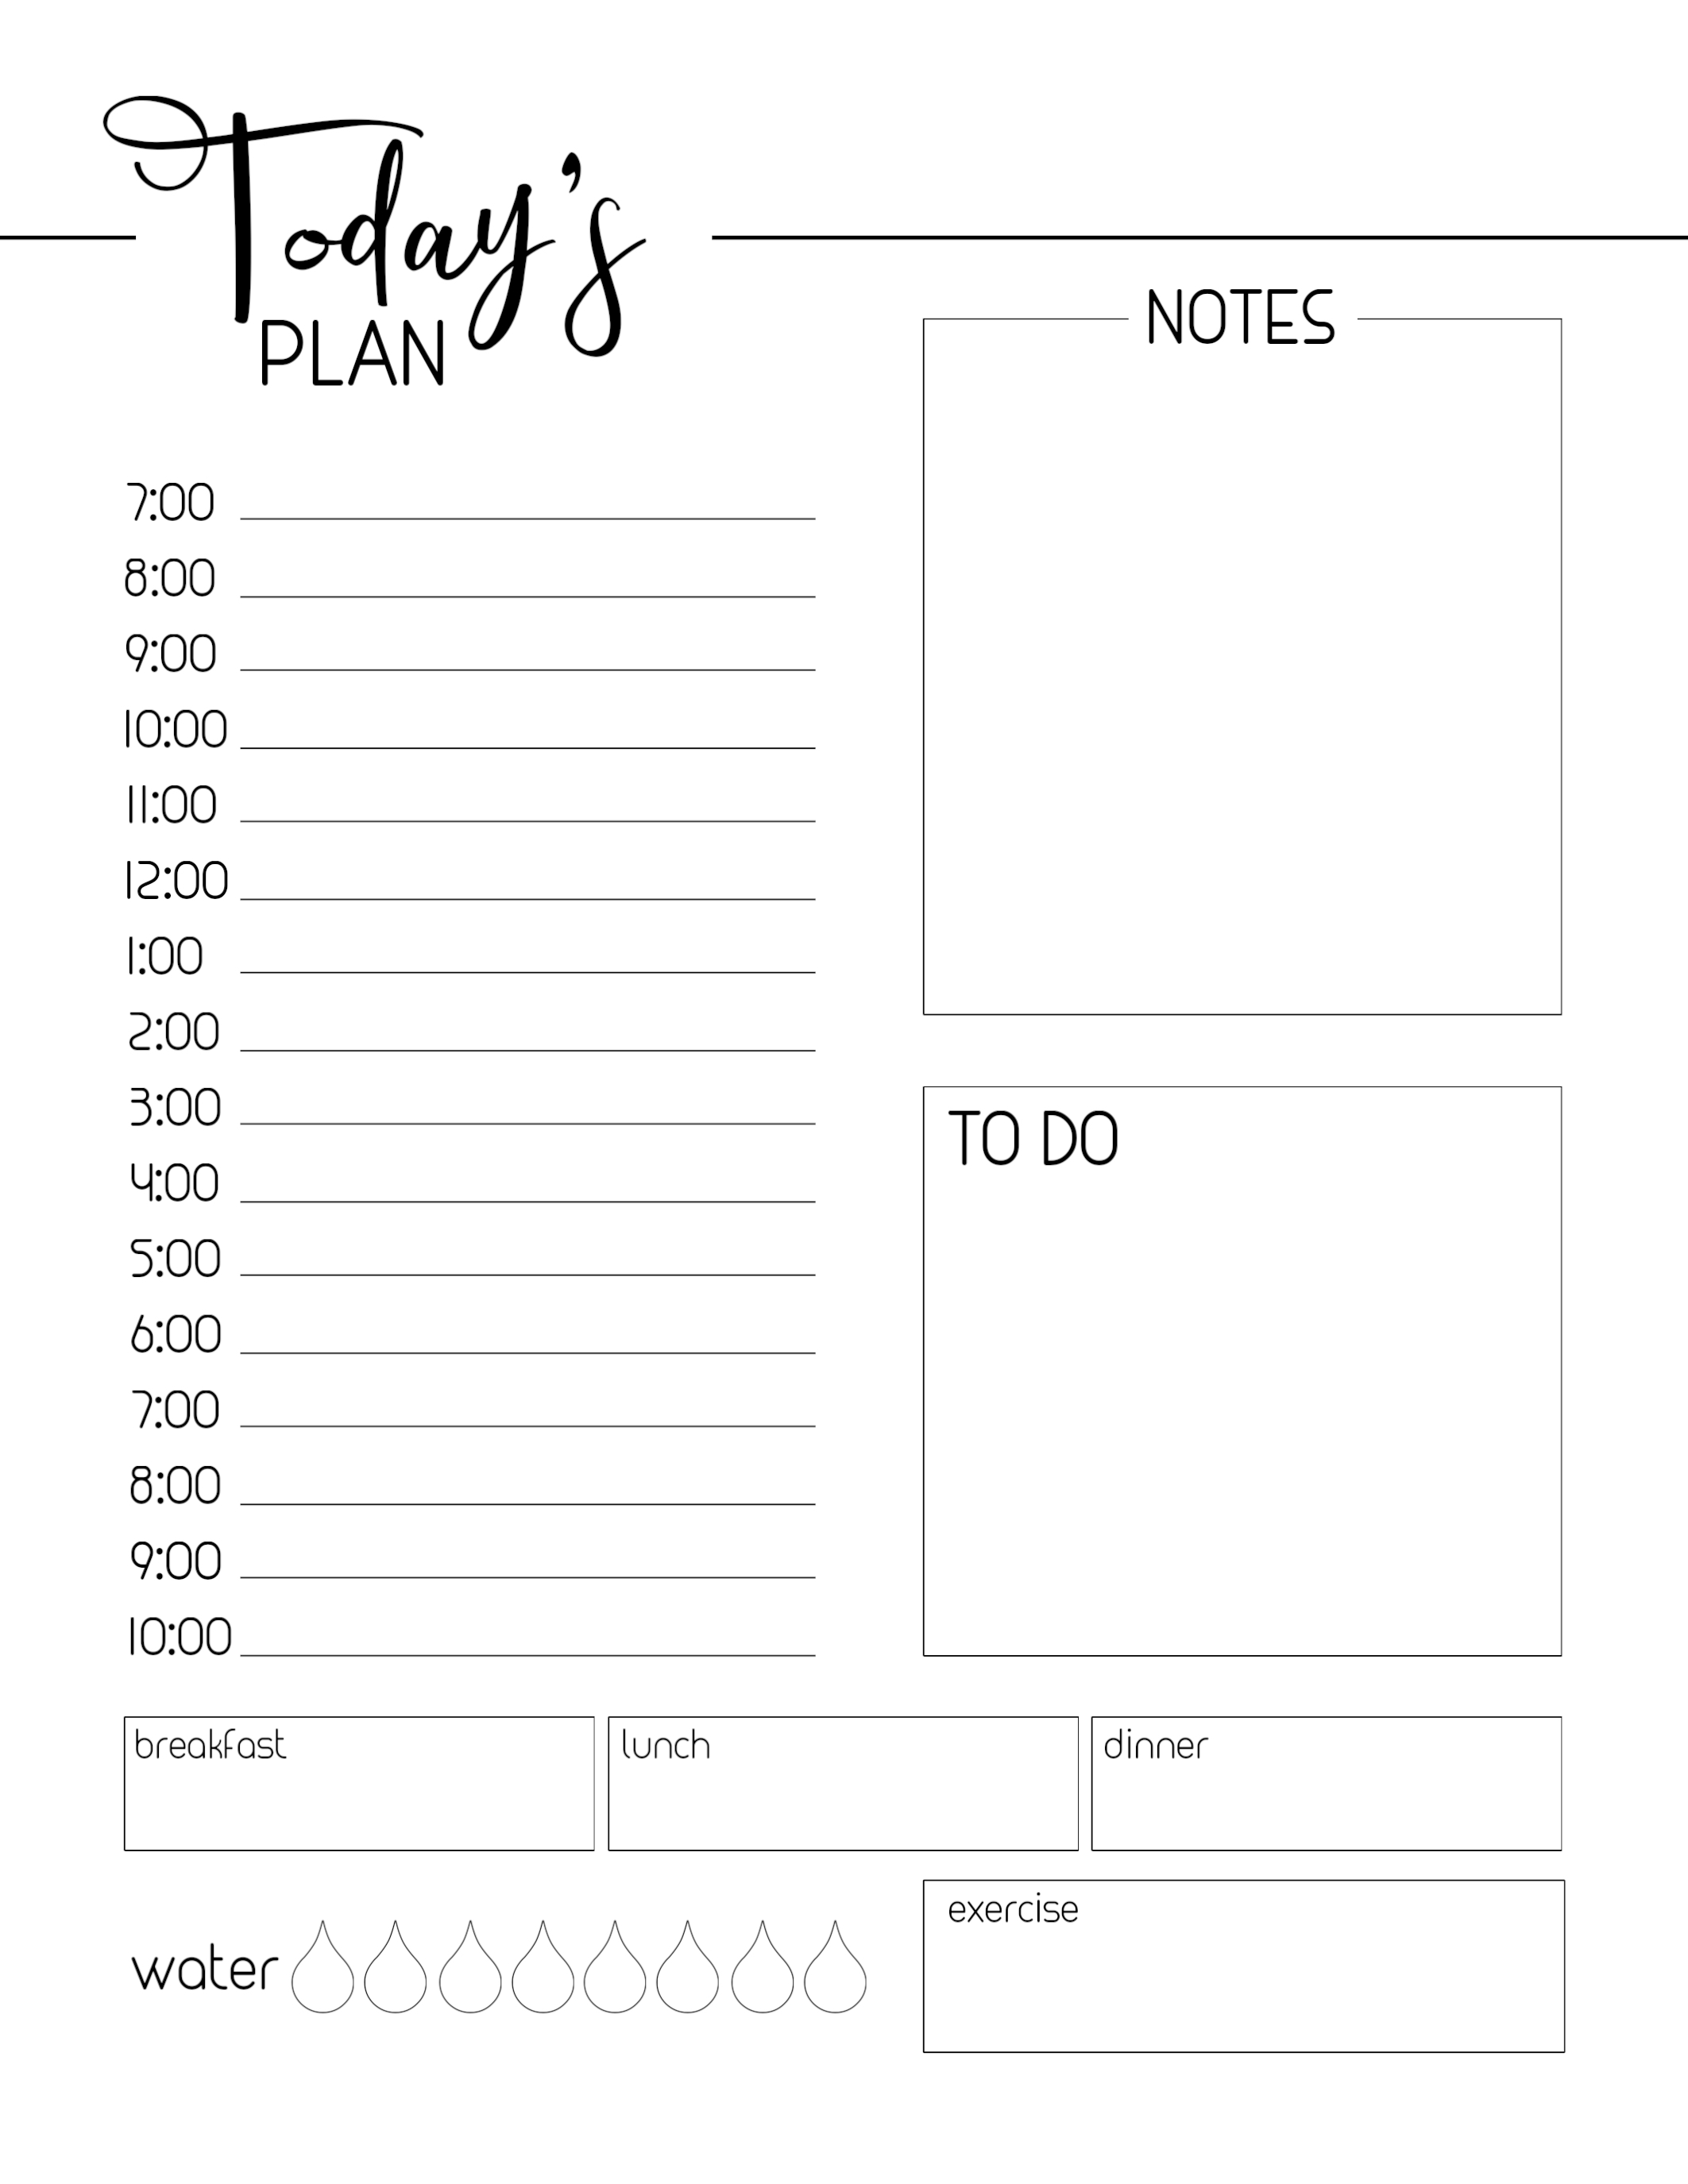 photo regarding Daily Planner Printable named Cost-free Printable Every day Planner Template - Paper Path Style